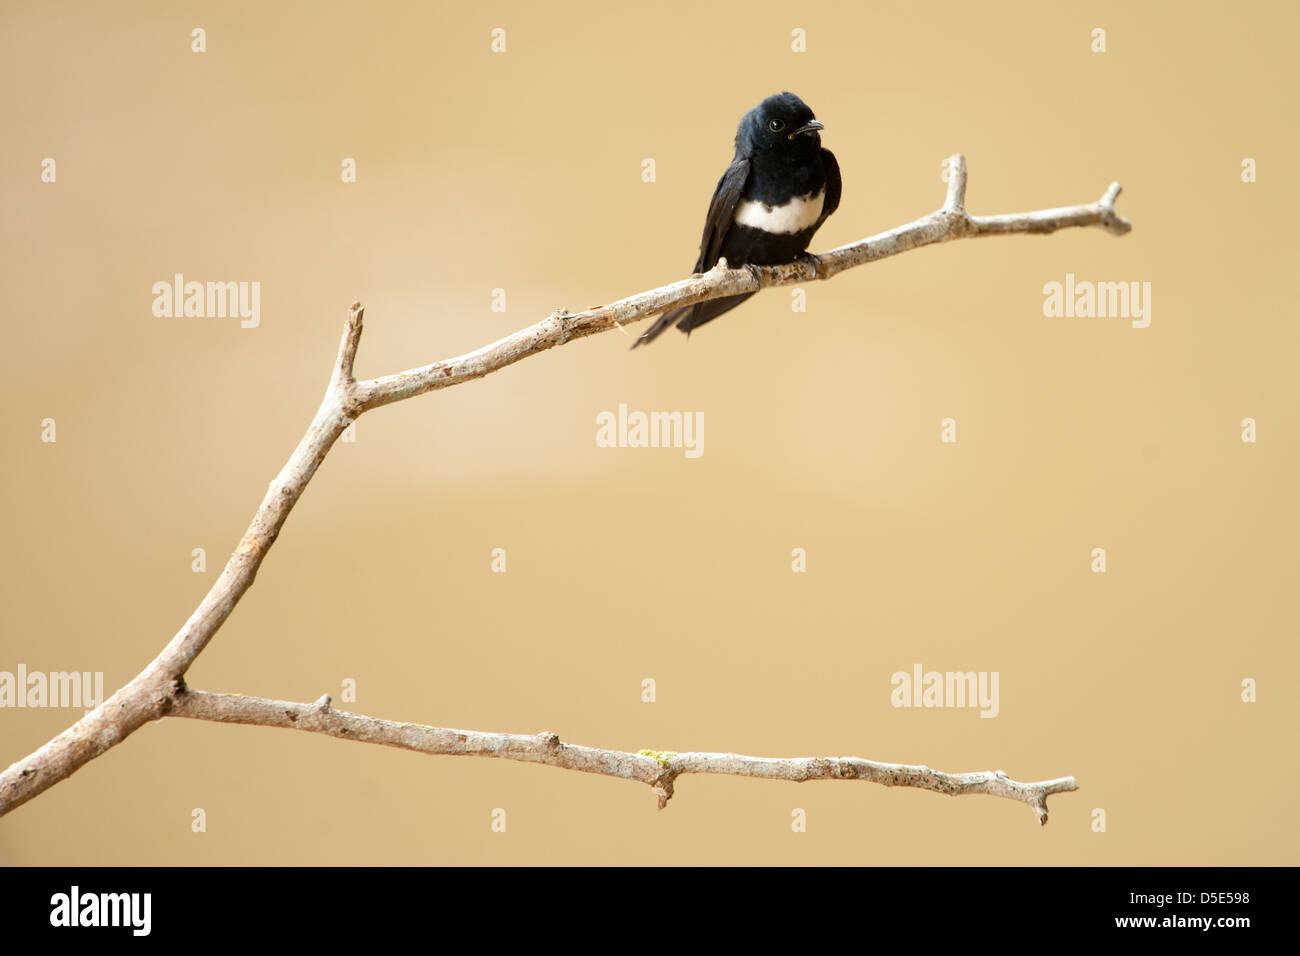 A White-chested Swift sitting on a branch(Cypseloides lemosi) - Stock Image